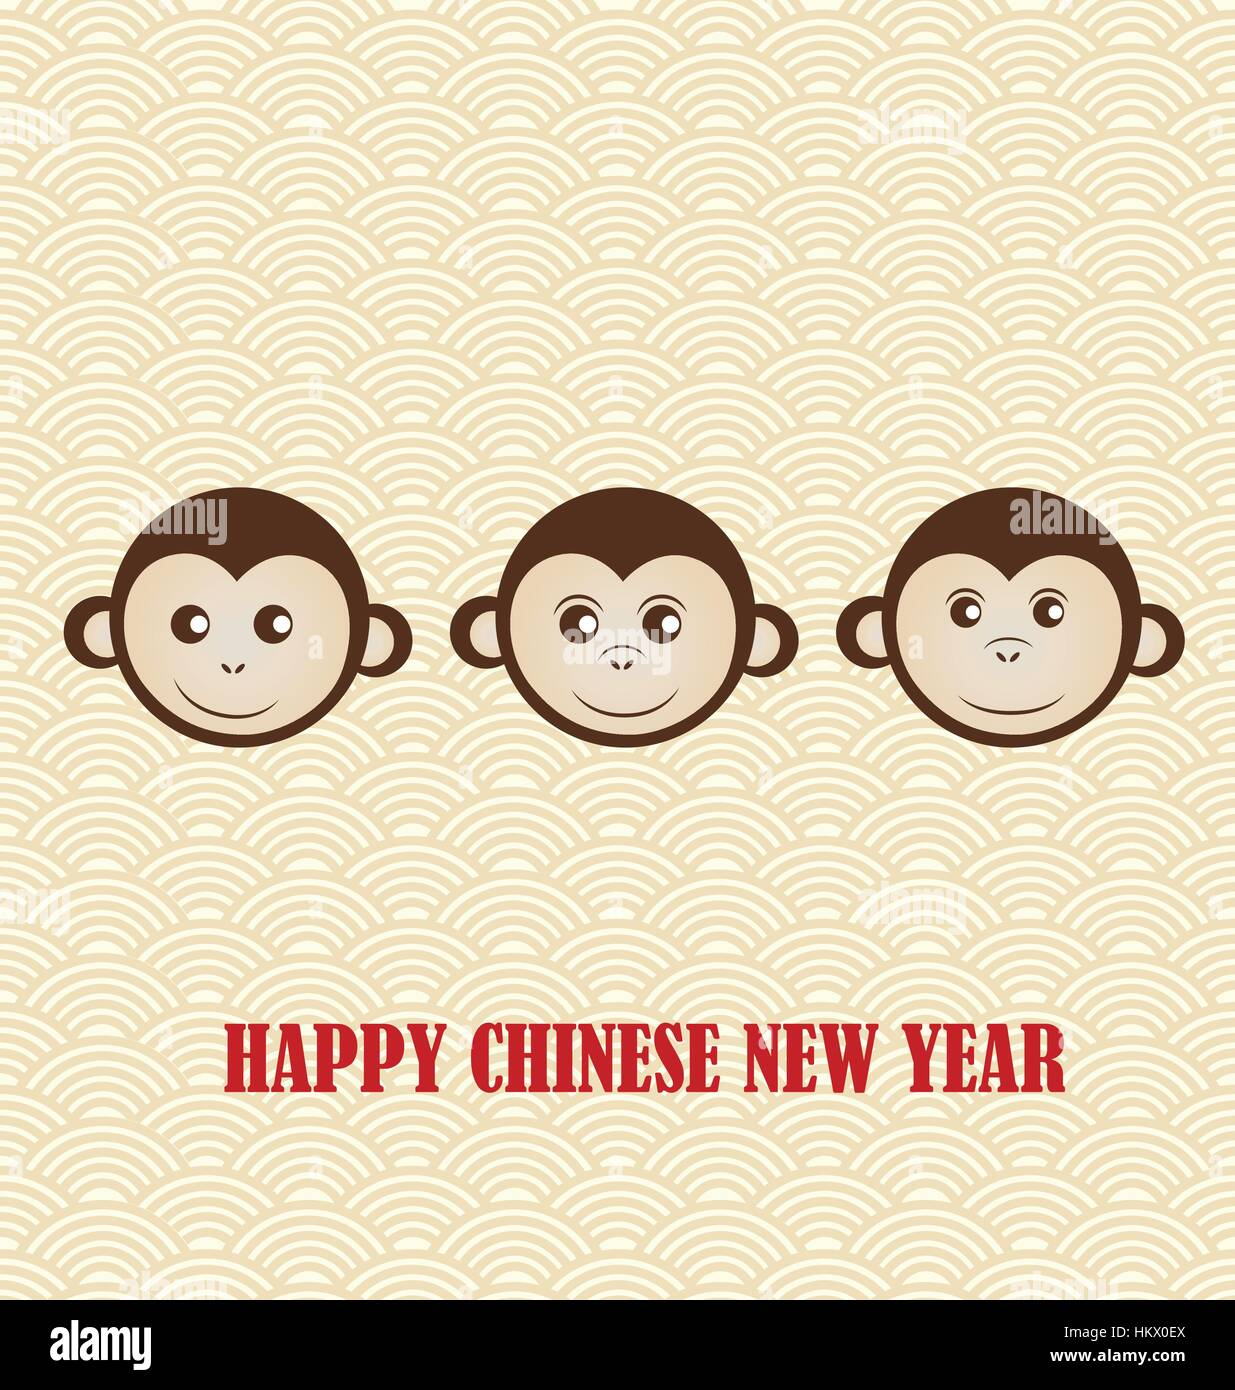 chinese new year design with cute monkeys background